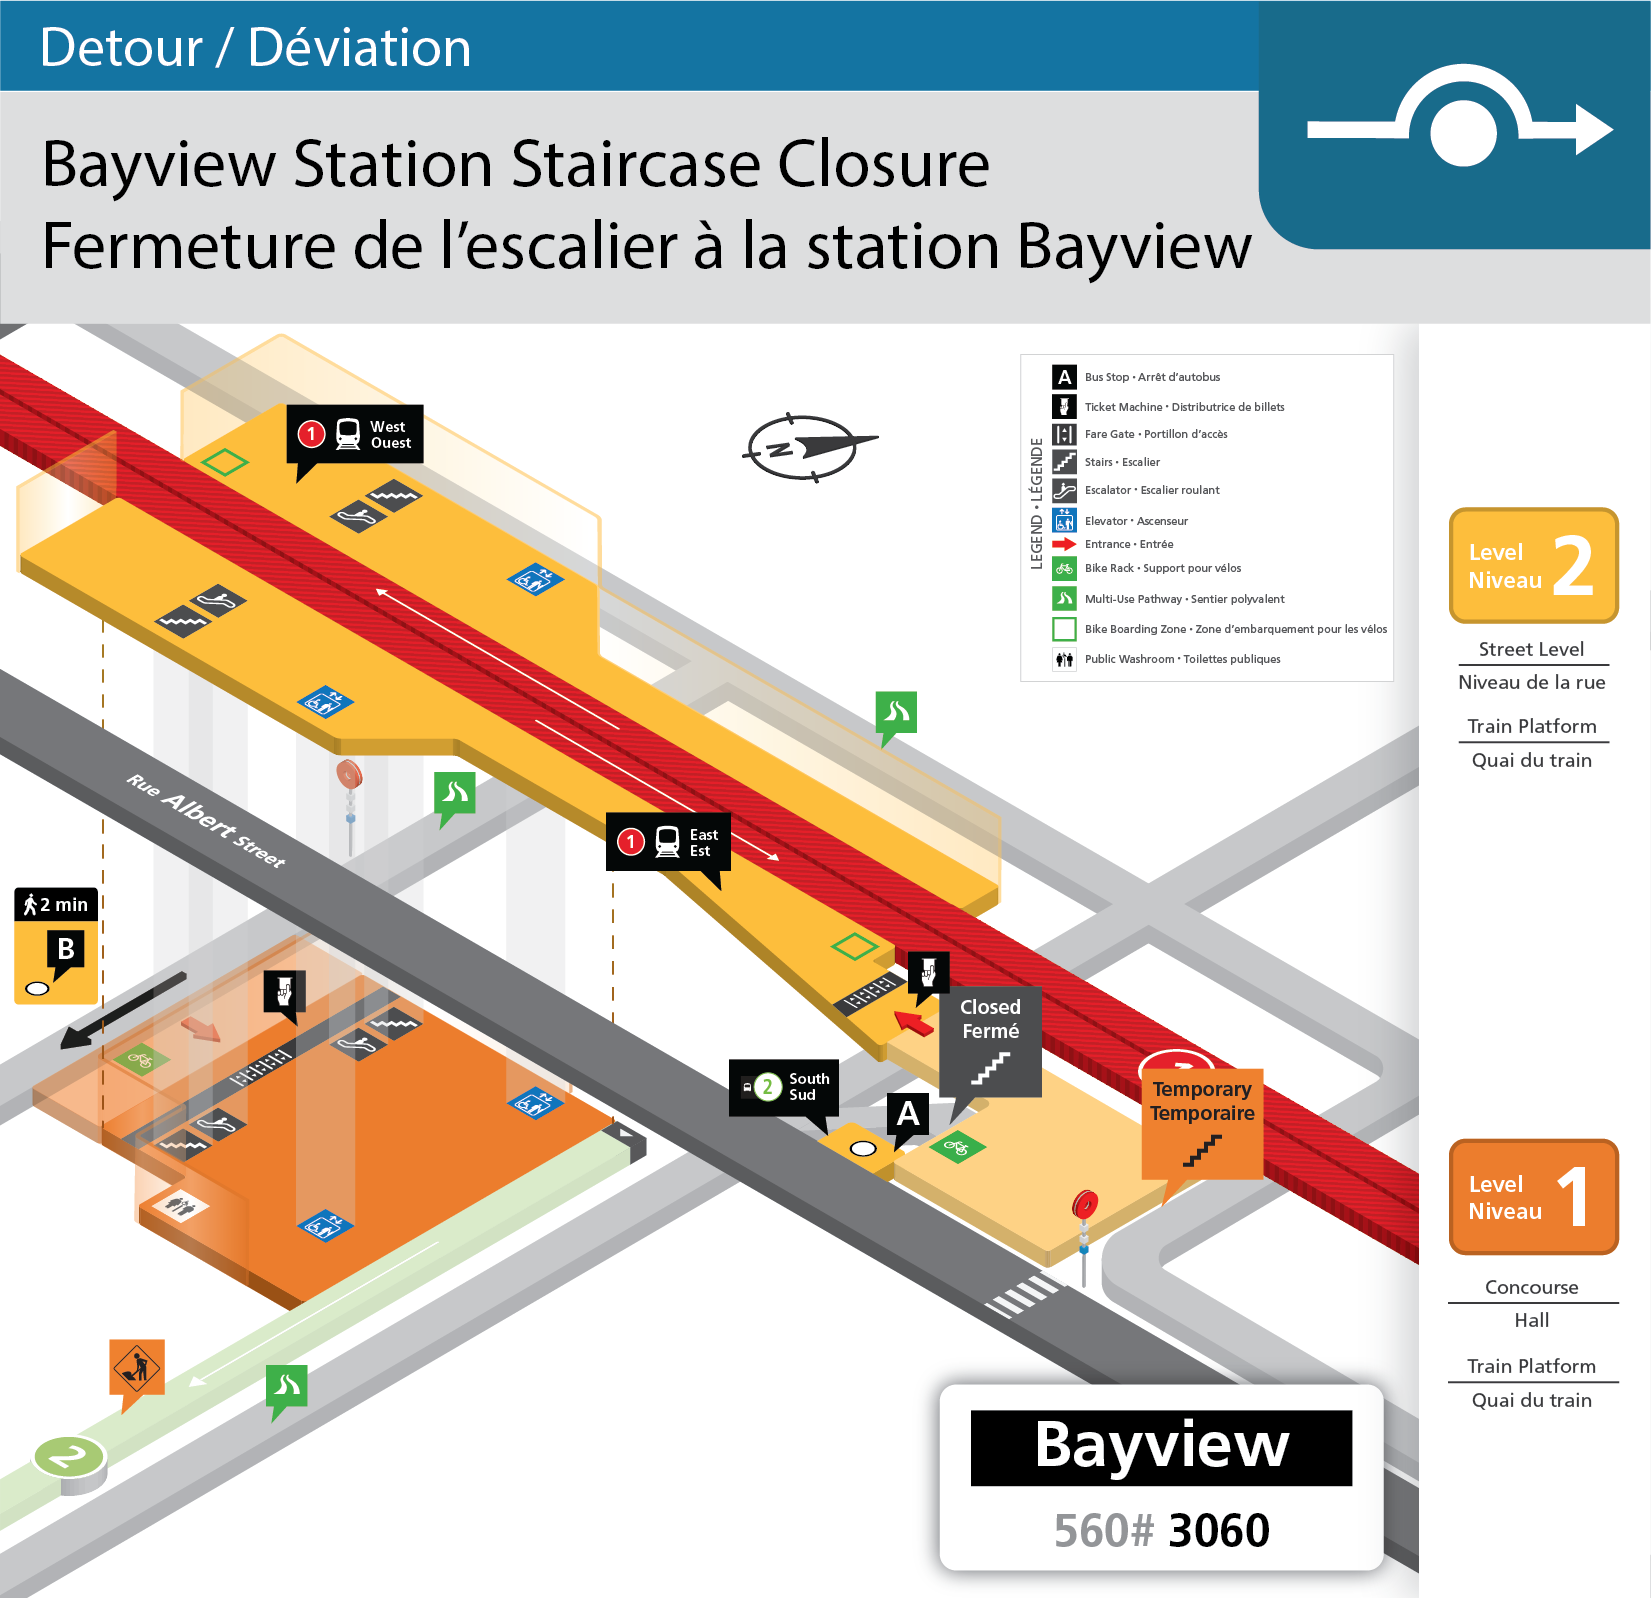 Map showing the closed staircase at Bayview Station and the location of the temporary staircase